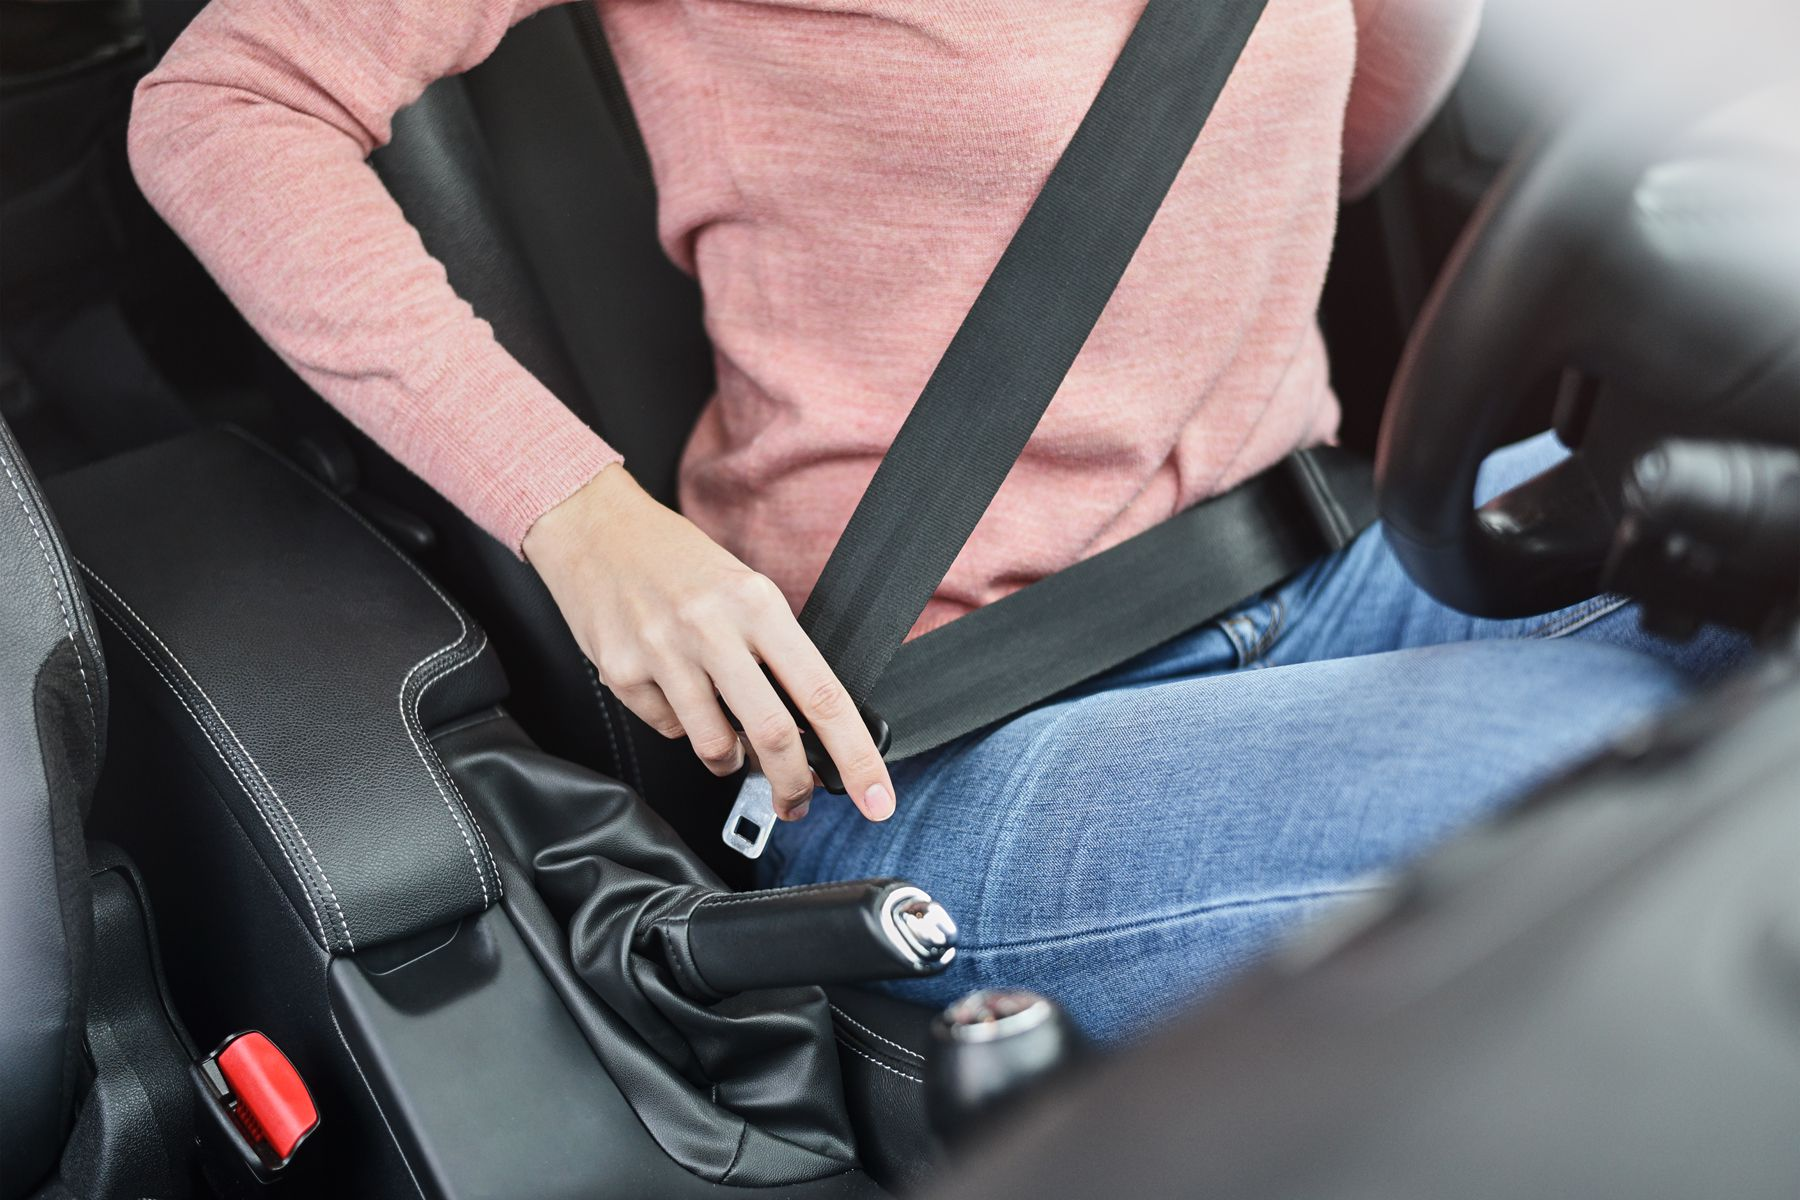 Woman fastening seat belt in the car. Car safety concept